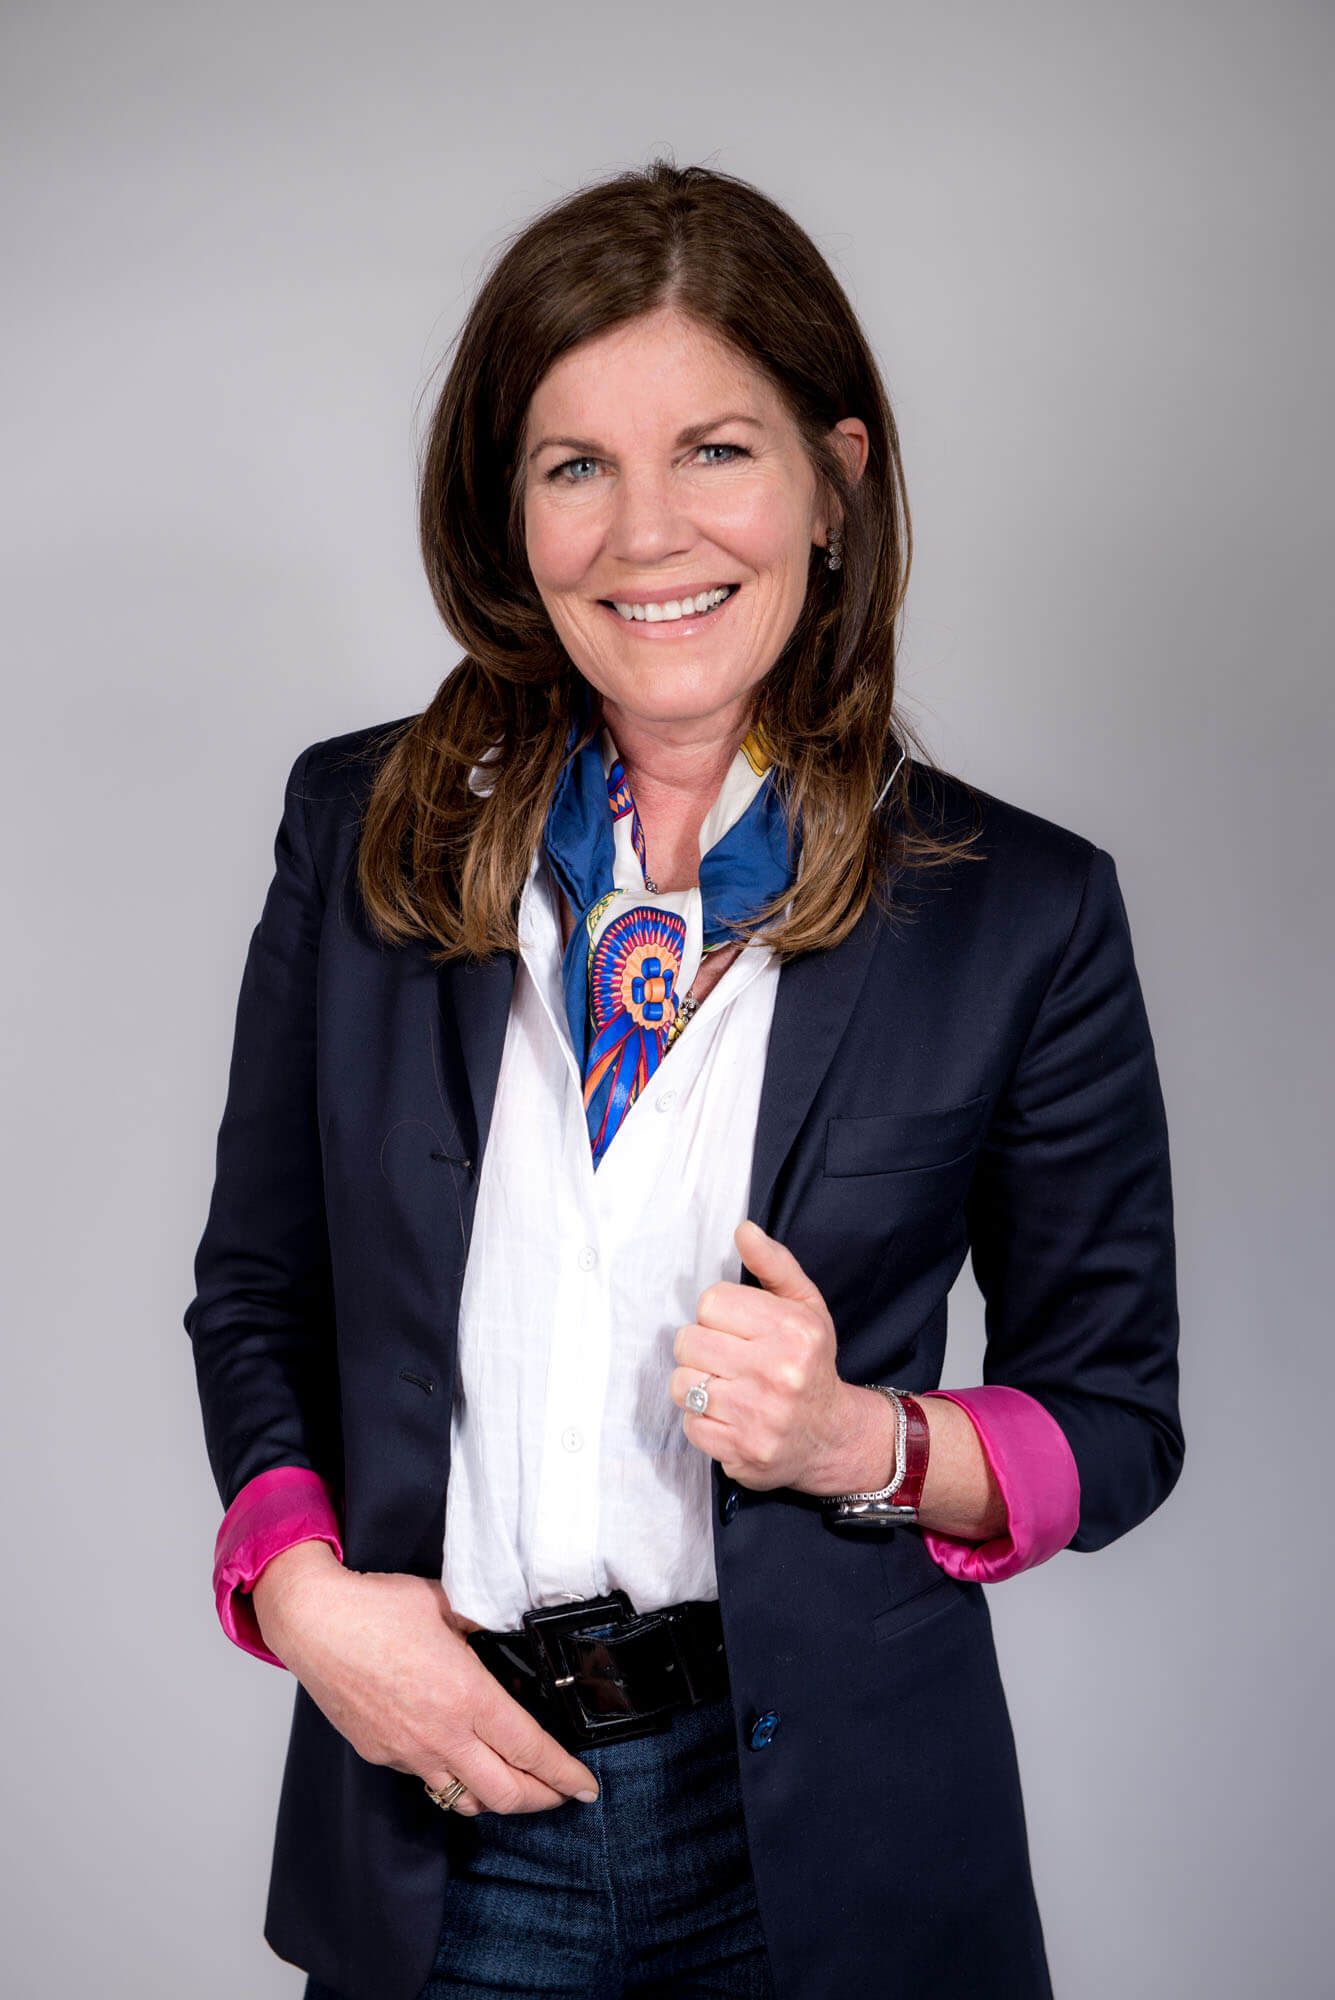 headshot of a women in business attire in a studio